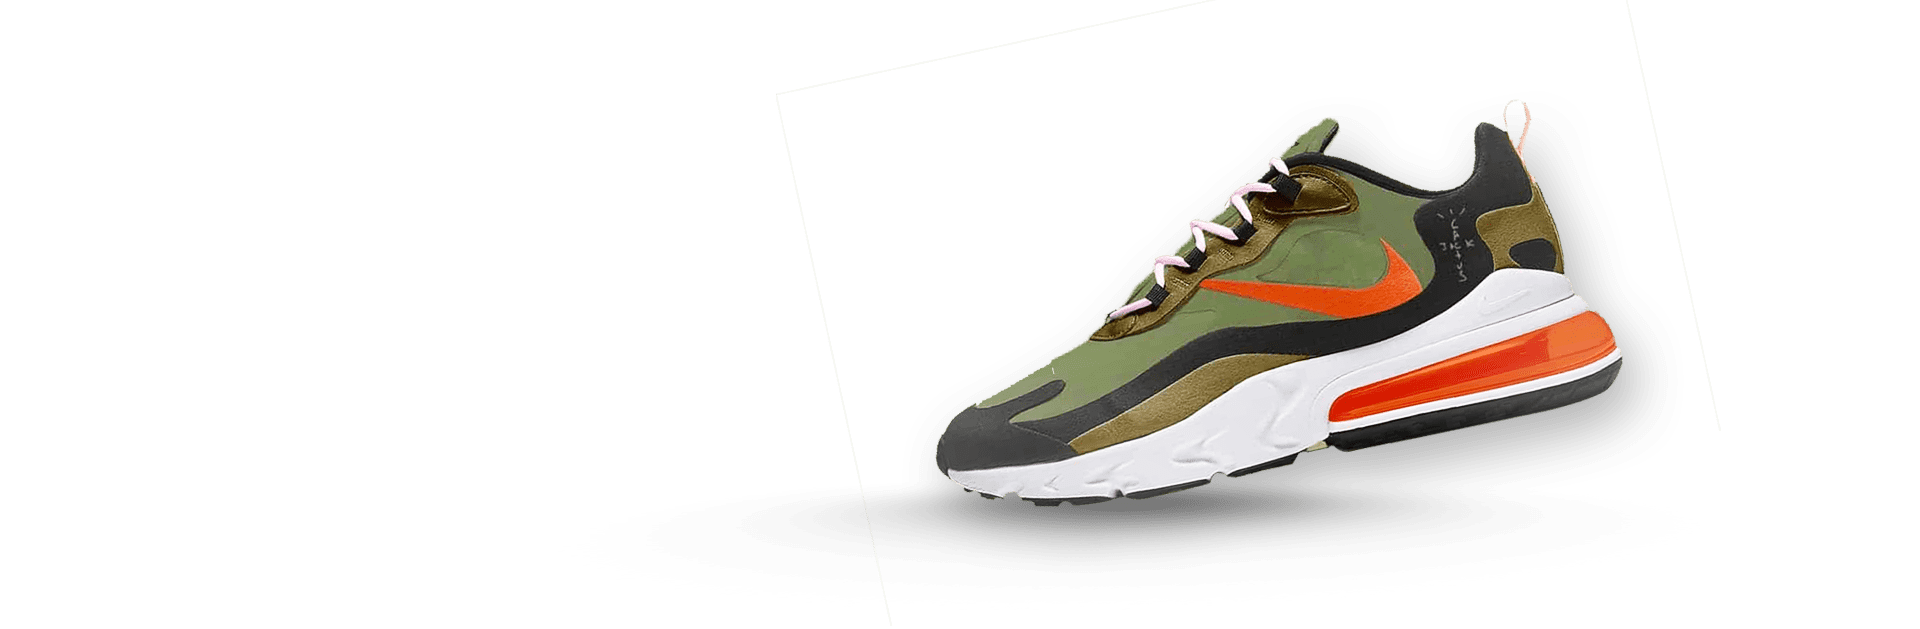 Homepage Shoes